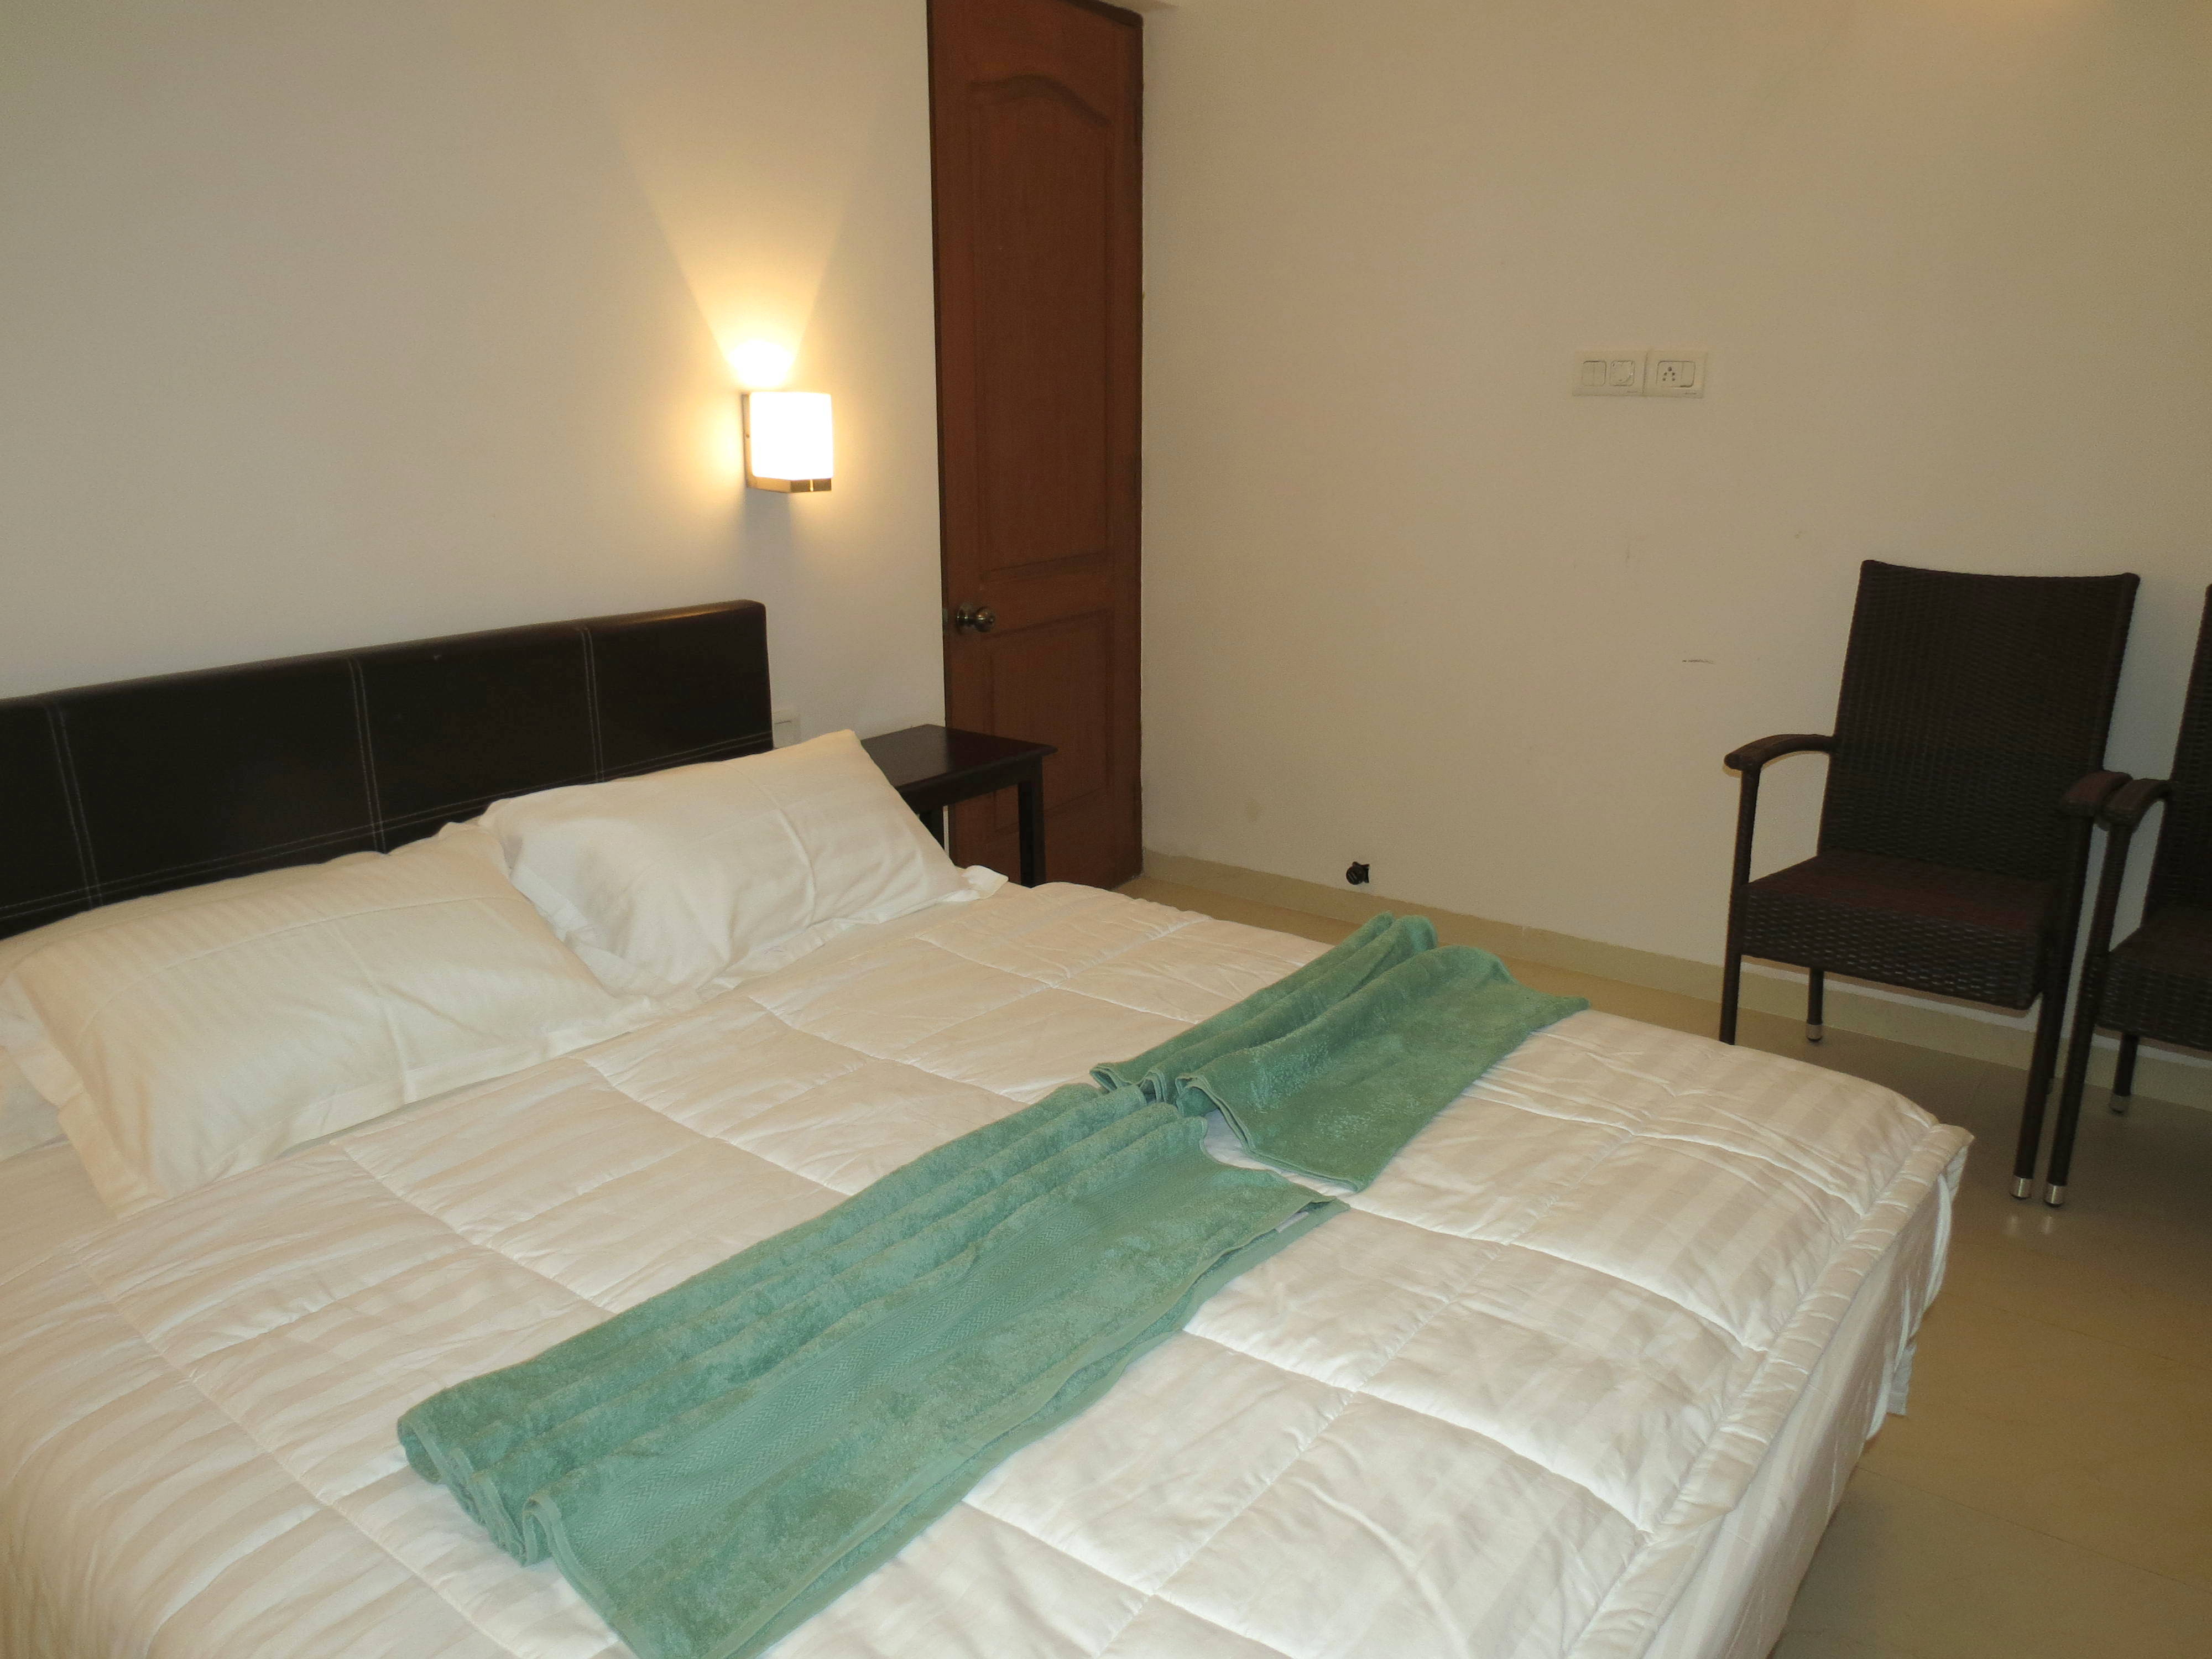 Apartment 04  Spacious luxurious 2 bedroom serviced apartment    WiFi photo 19030852